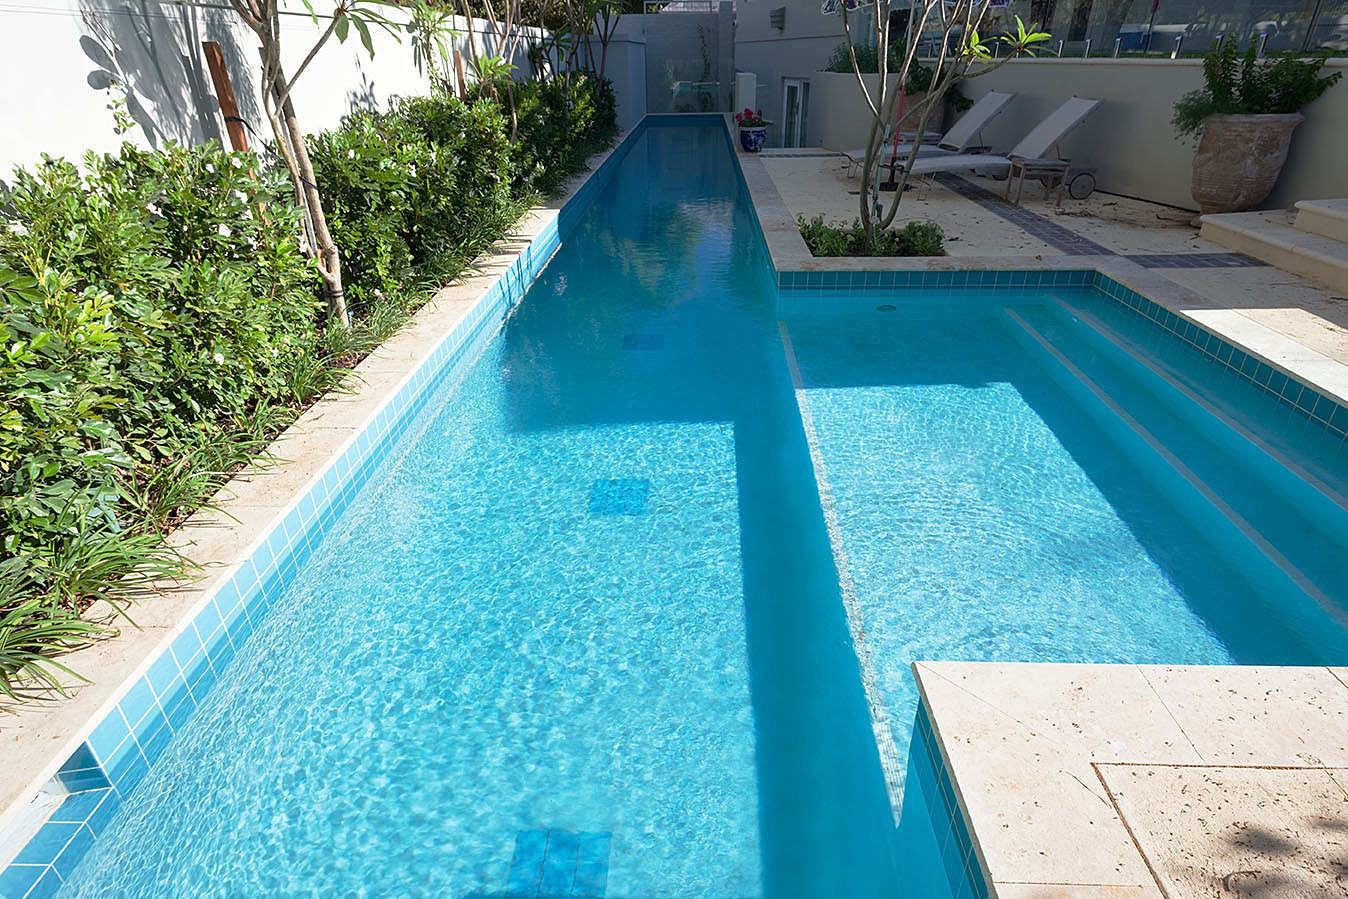 perth concrete pools award winning quality at an affordable price lap pool in peppermint grove. Black Bedroom Furniture Sets. Home Design Ideas